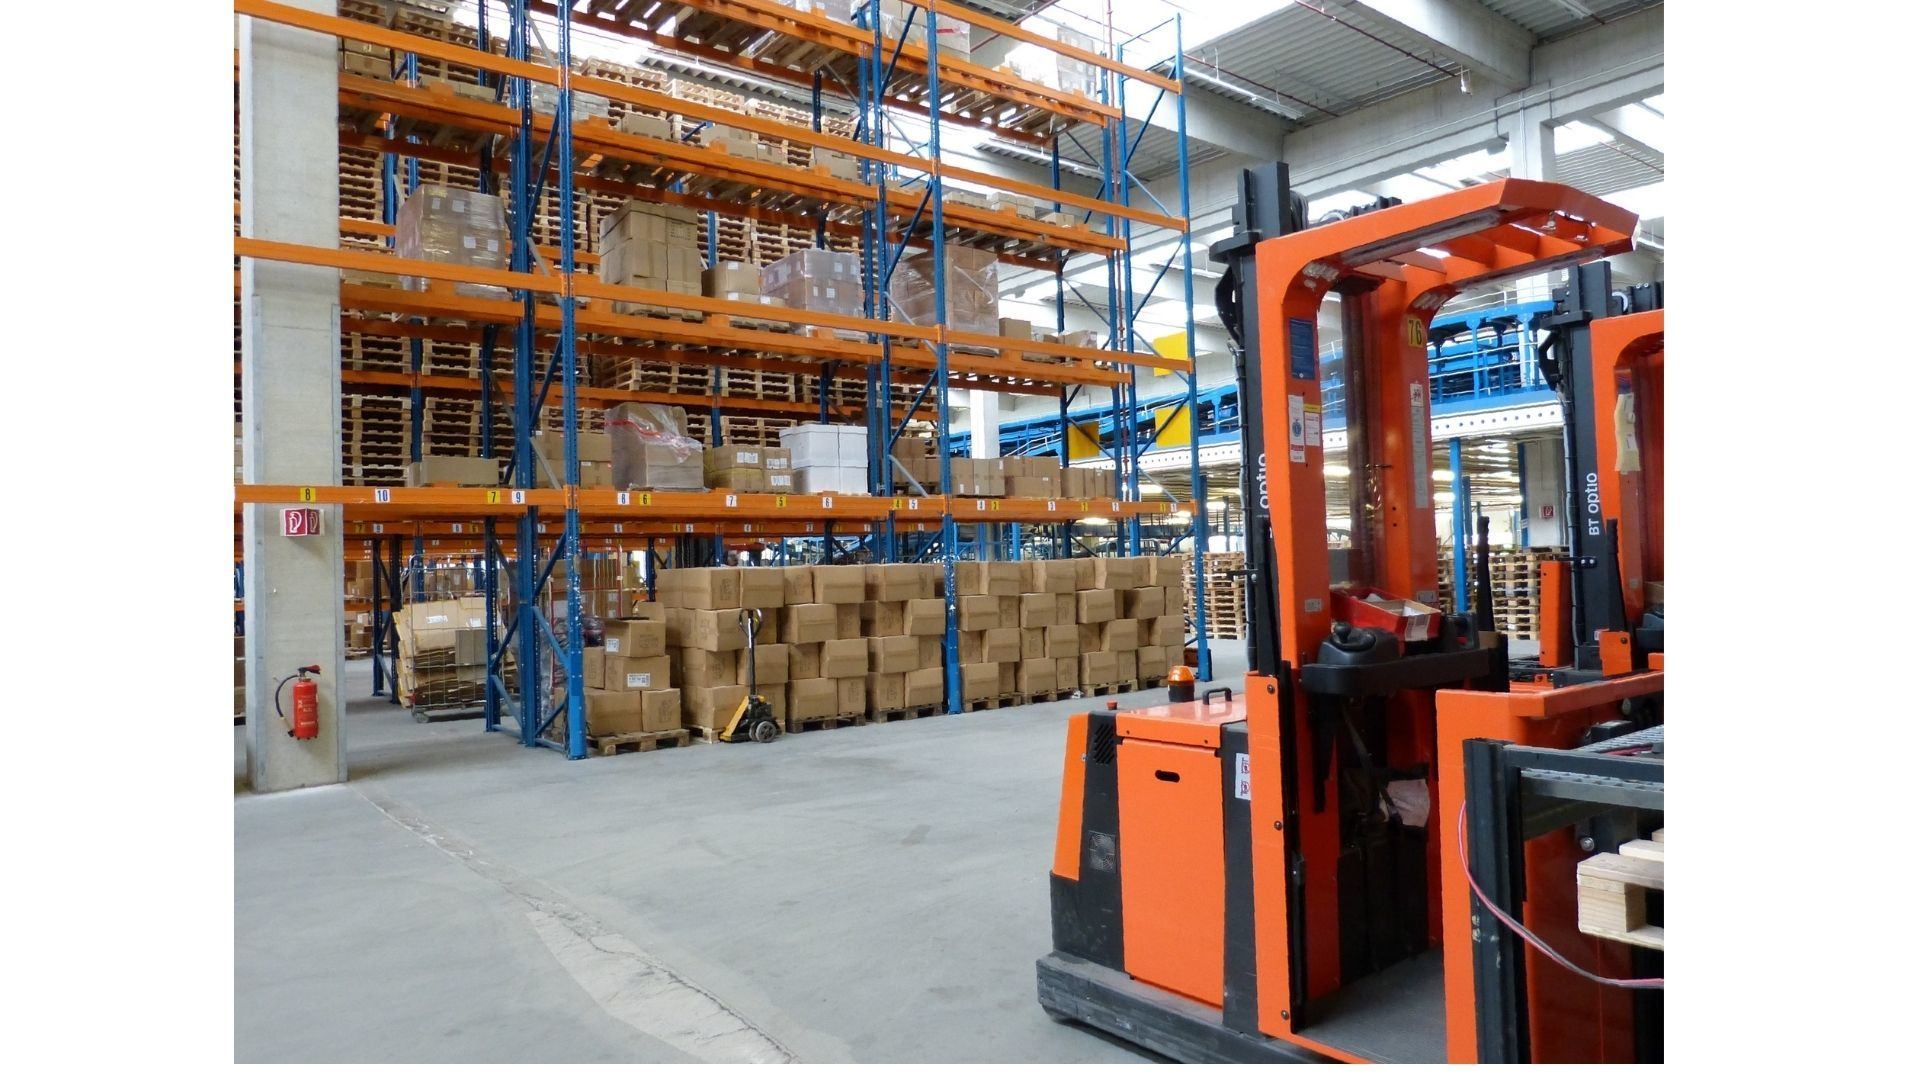 【Ibaraki,Chikusei】Container inspection and packaging (high hourly wage)